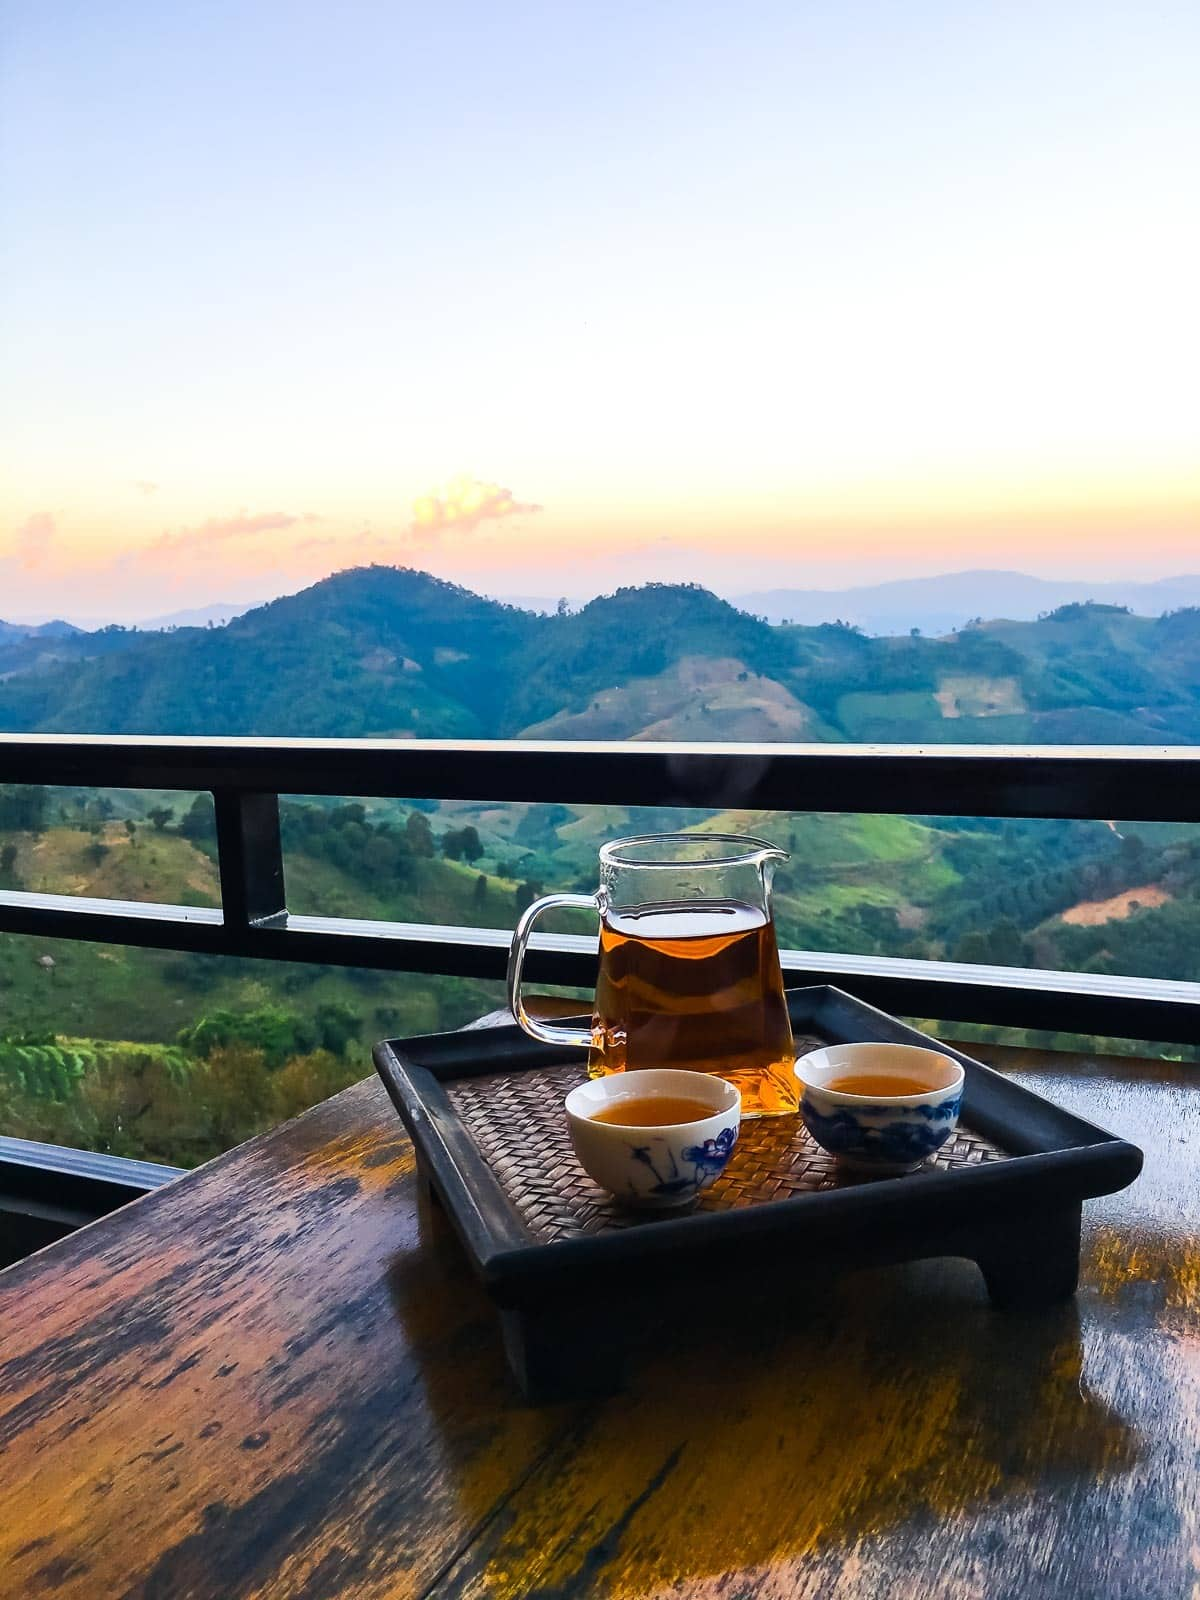 Tea fields and mountains of northern Thailand. Complete Thailand travel guide to plan your visit. | found at wellplated.com @wellplated